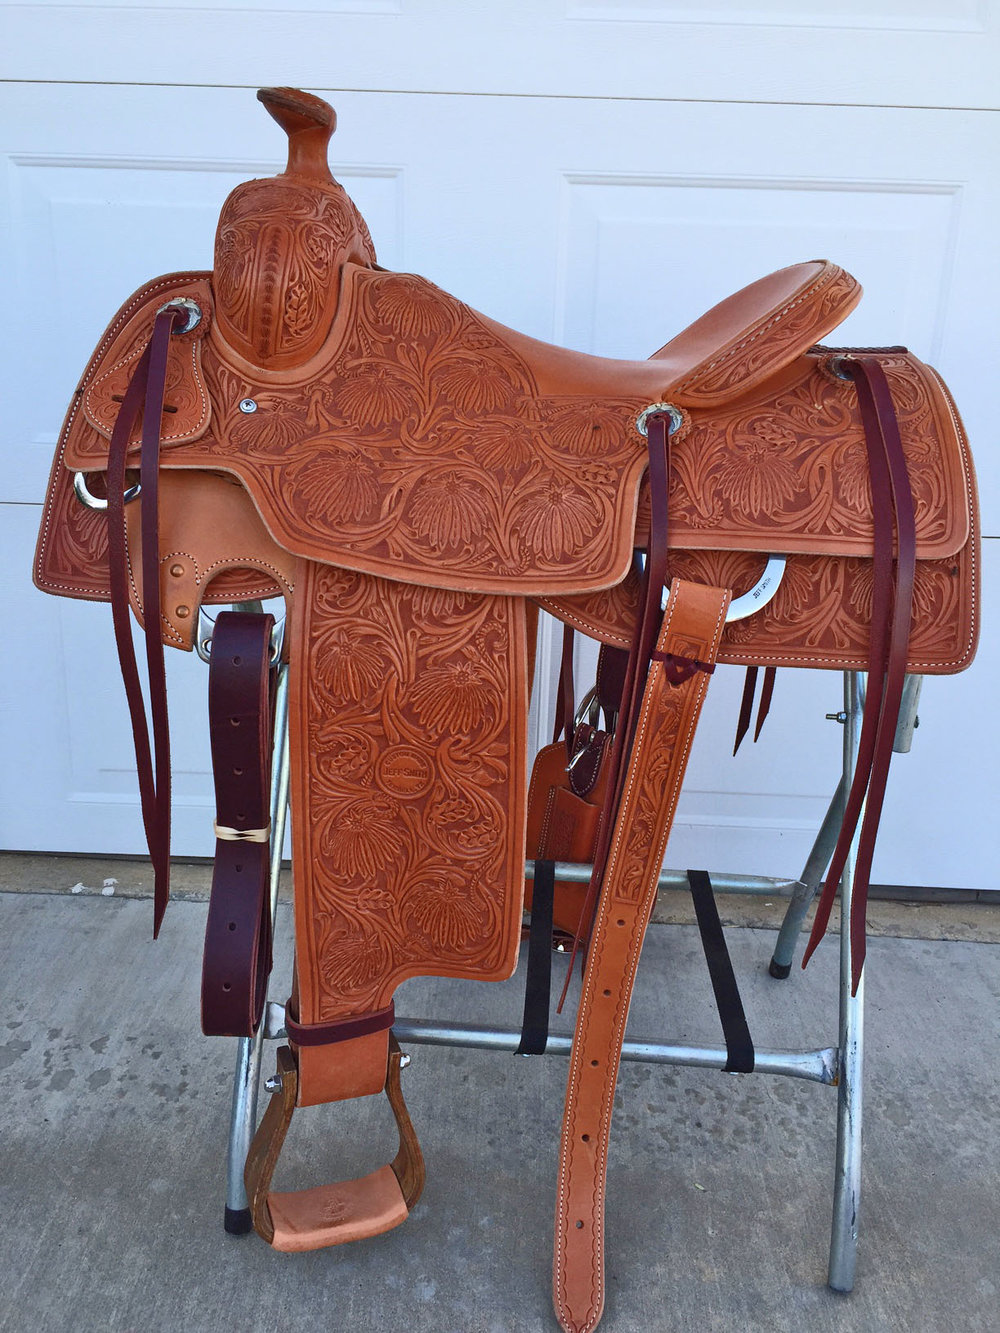 "NEW!!!  Jeff Smith's Custom Saddles   CUSTOM MADE 16"" Low association tree with 16"" seat and a flat plate rigging. Full tooled Poinsettia pattern. The saddle is new and has never been ridden. Cowboy saddle deluxe!"